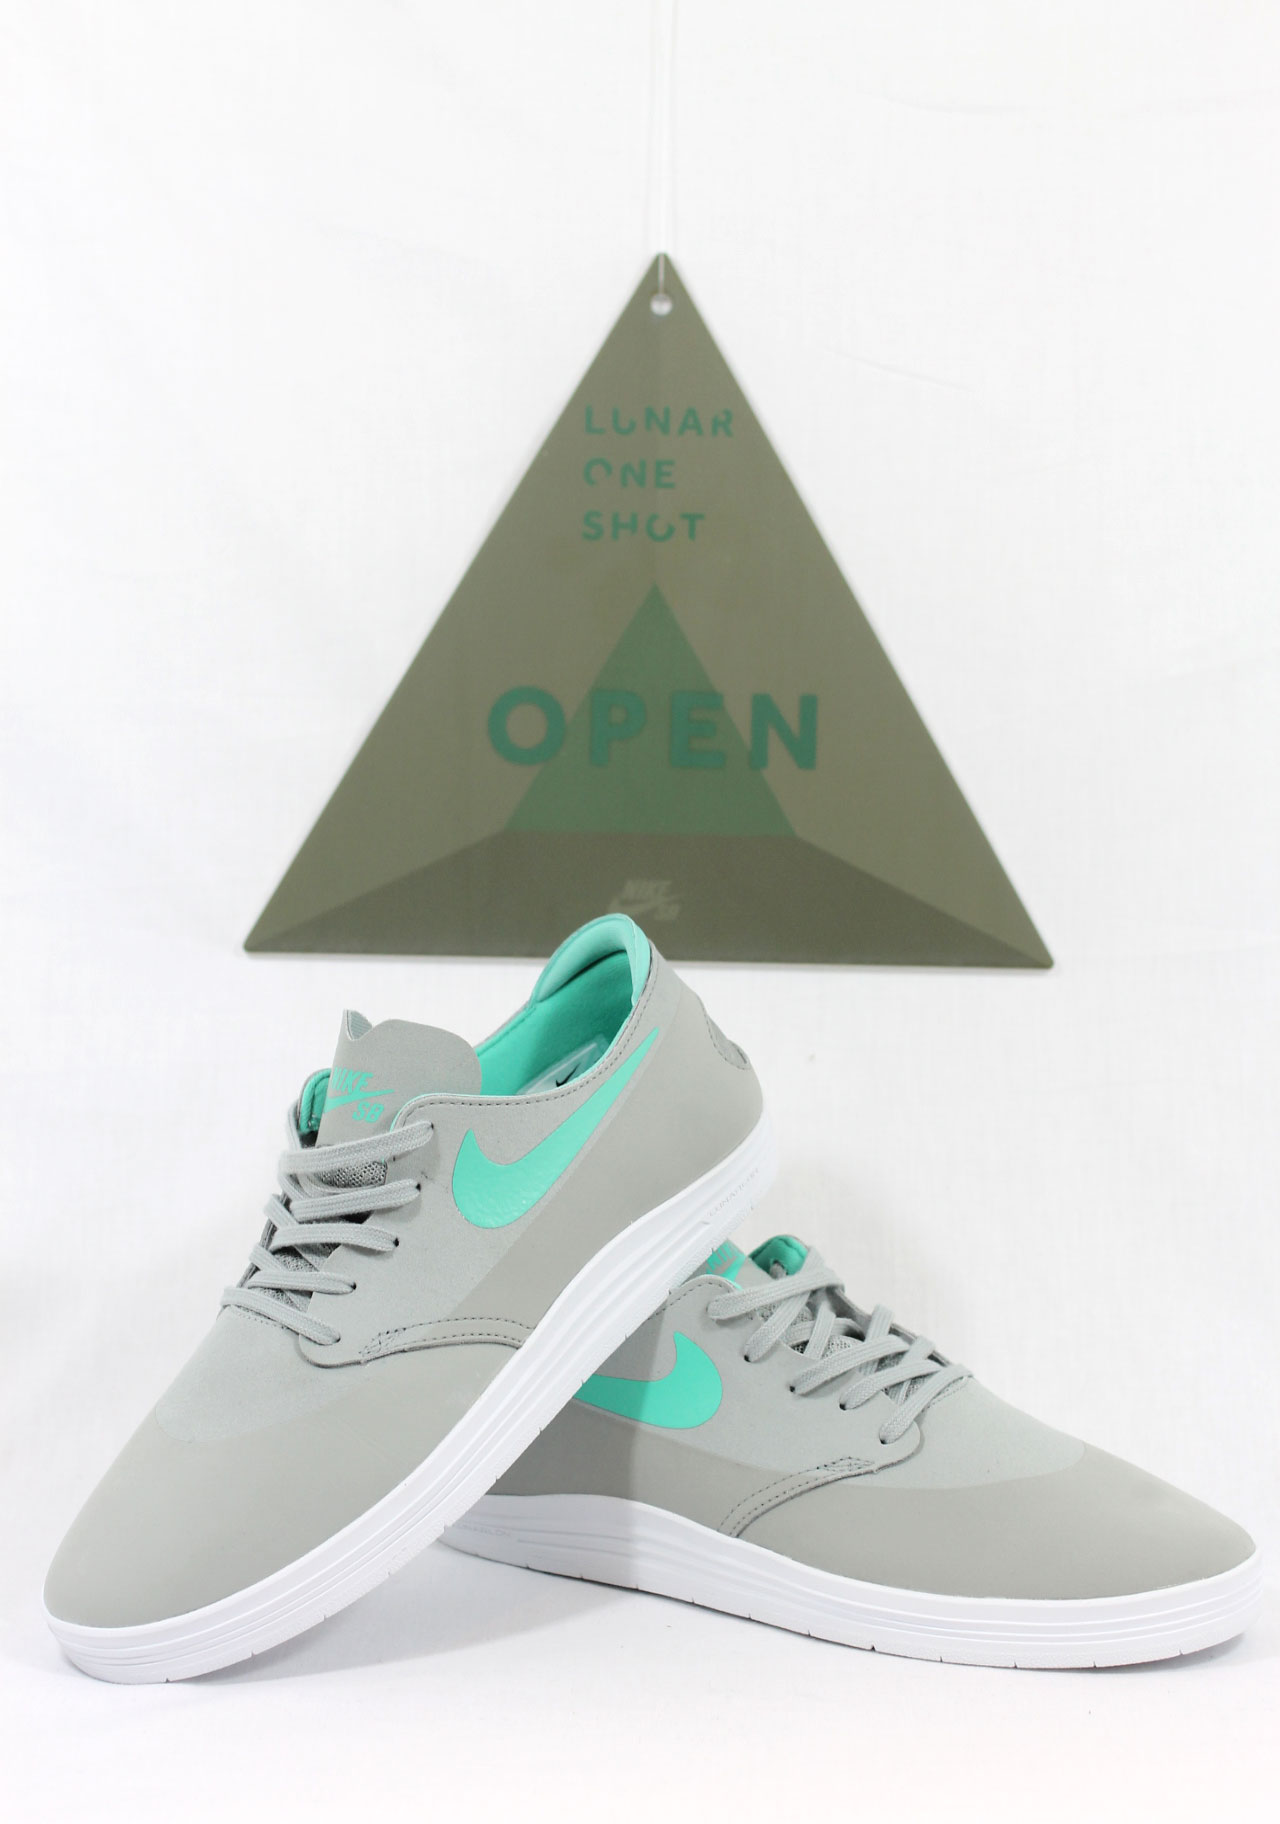 the best attitude c7407 a1a1c Nike SB Lunar One Shot 8211 Base Grey  Crystal Mint Release Info durable  modeling